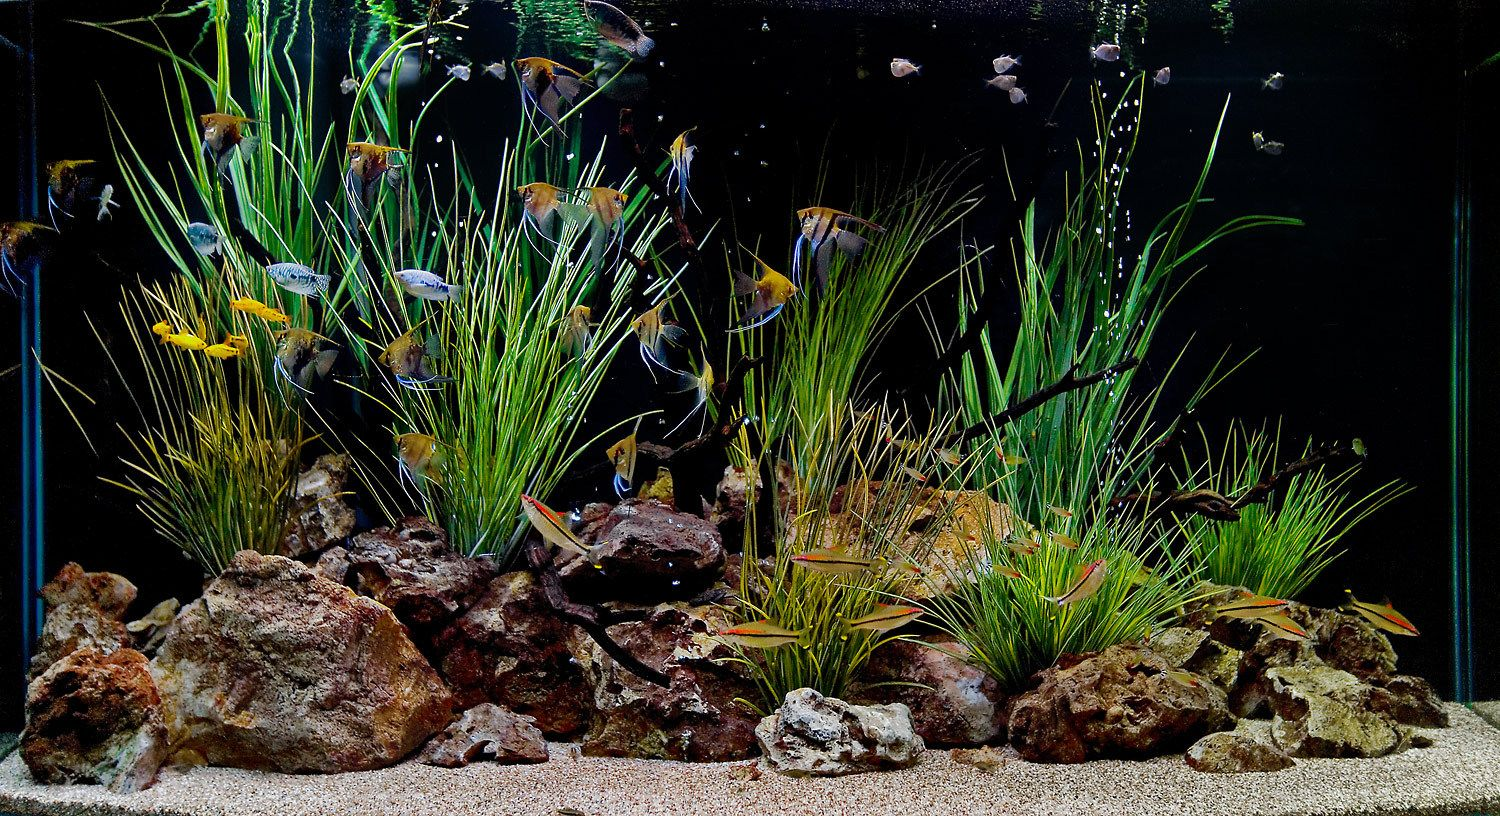 Freshwater fish aquarium accessories - Freshwater Aquarium Design Ideas Aquarium Design Group Custom Aquarium Design Installation And Service